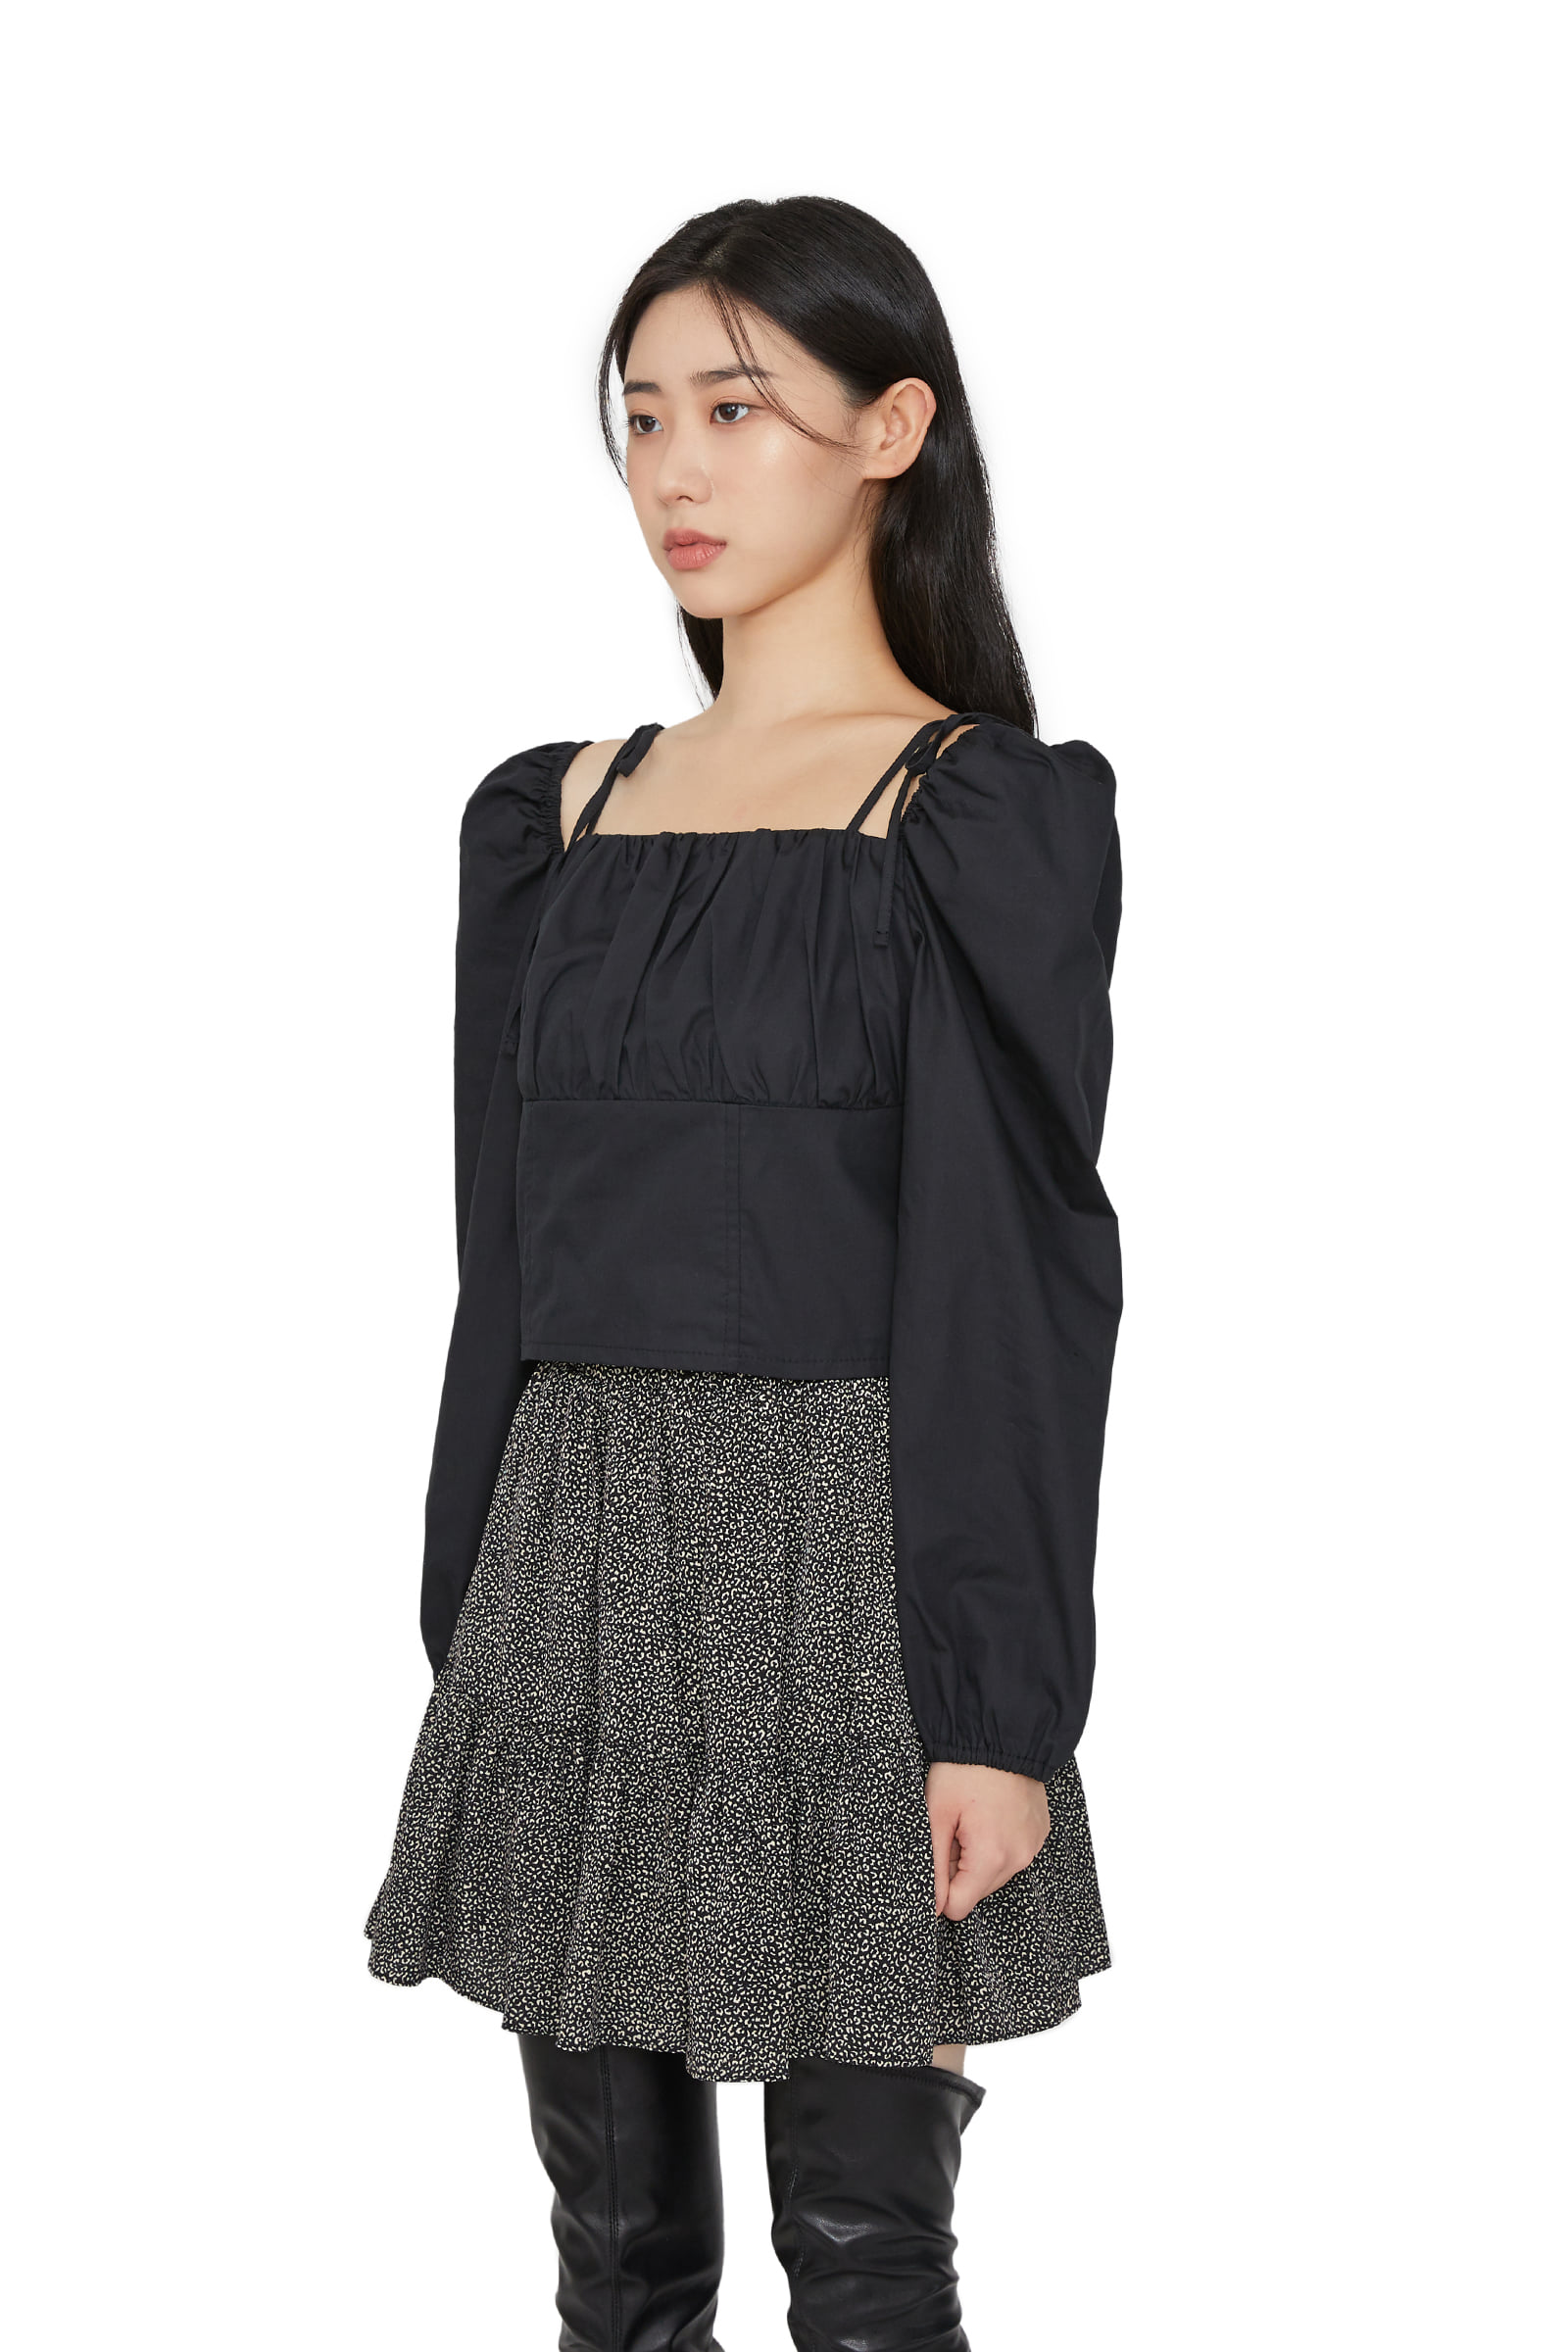 Your square bow blouse